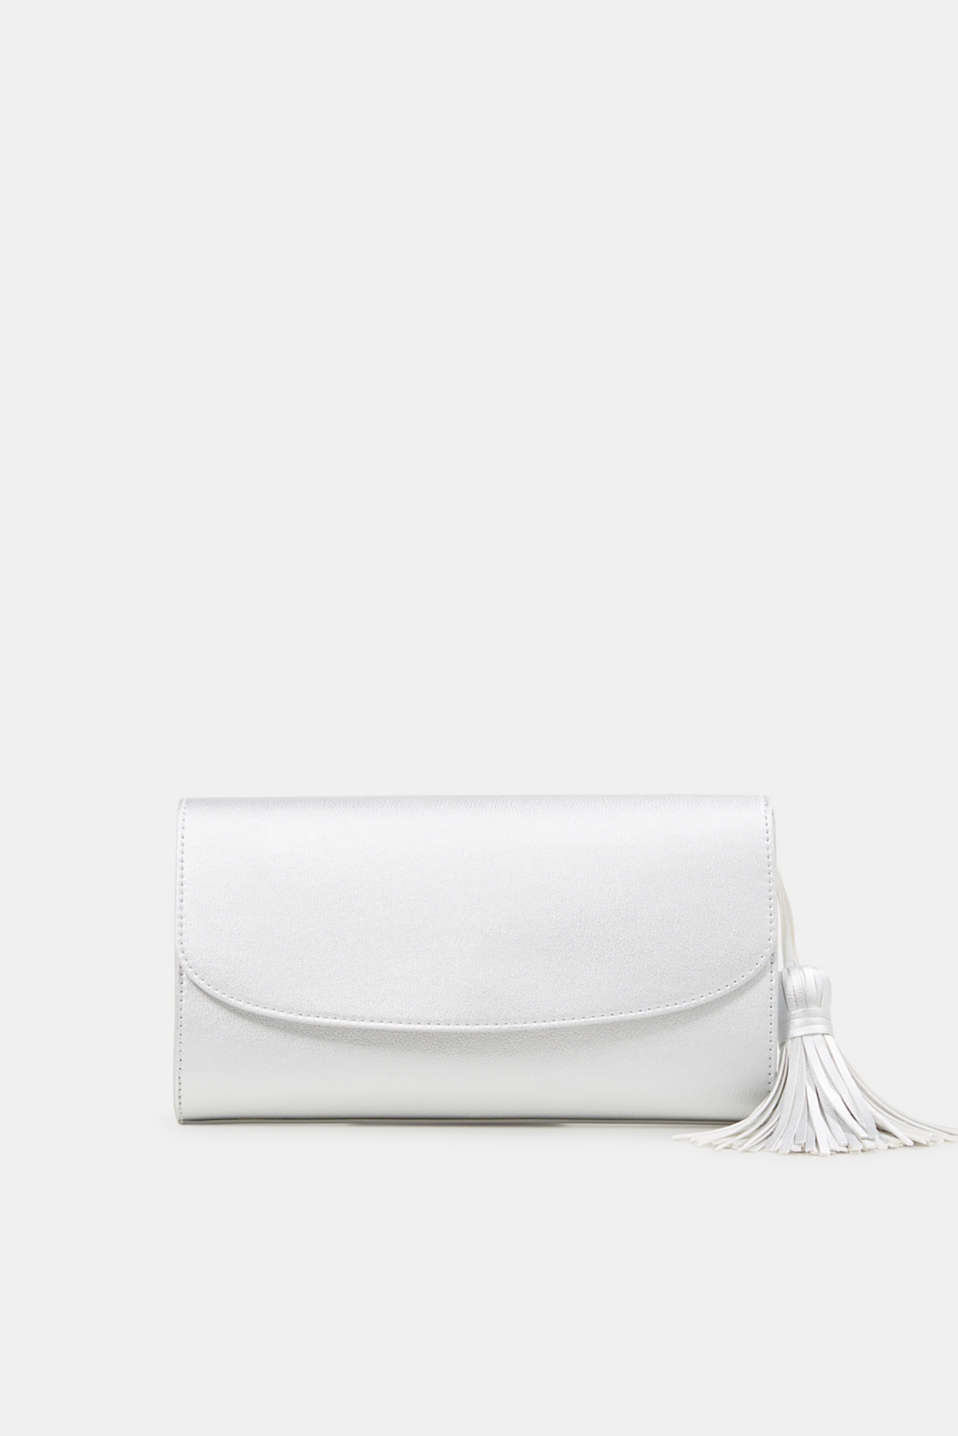 Esprit - Clutch in Leder-Optik, vegan